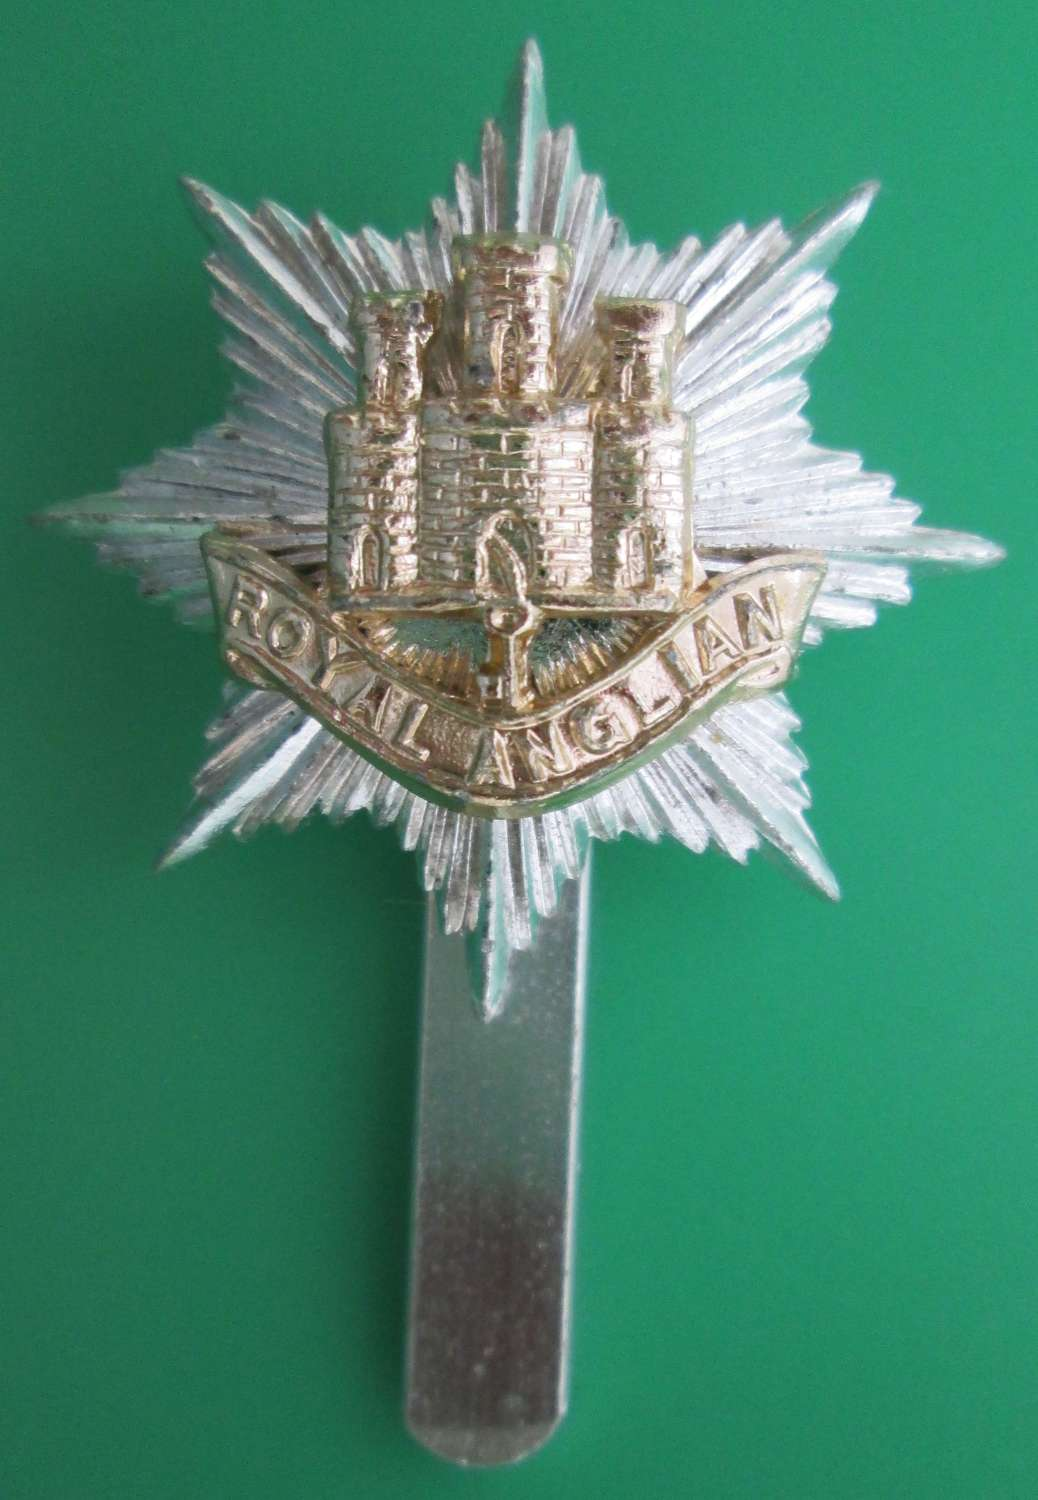 AN ANODISED ROYAL ANGLIAN CAP BADGE